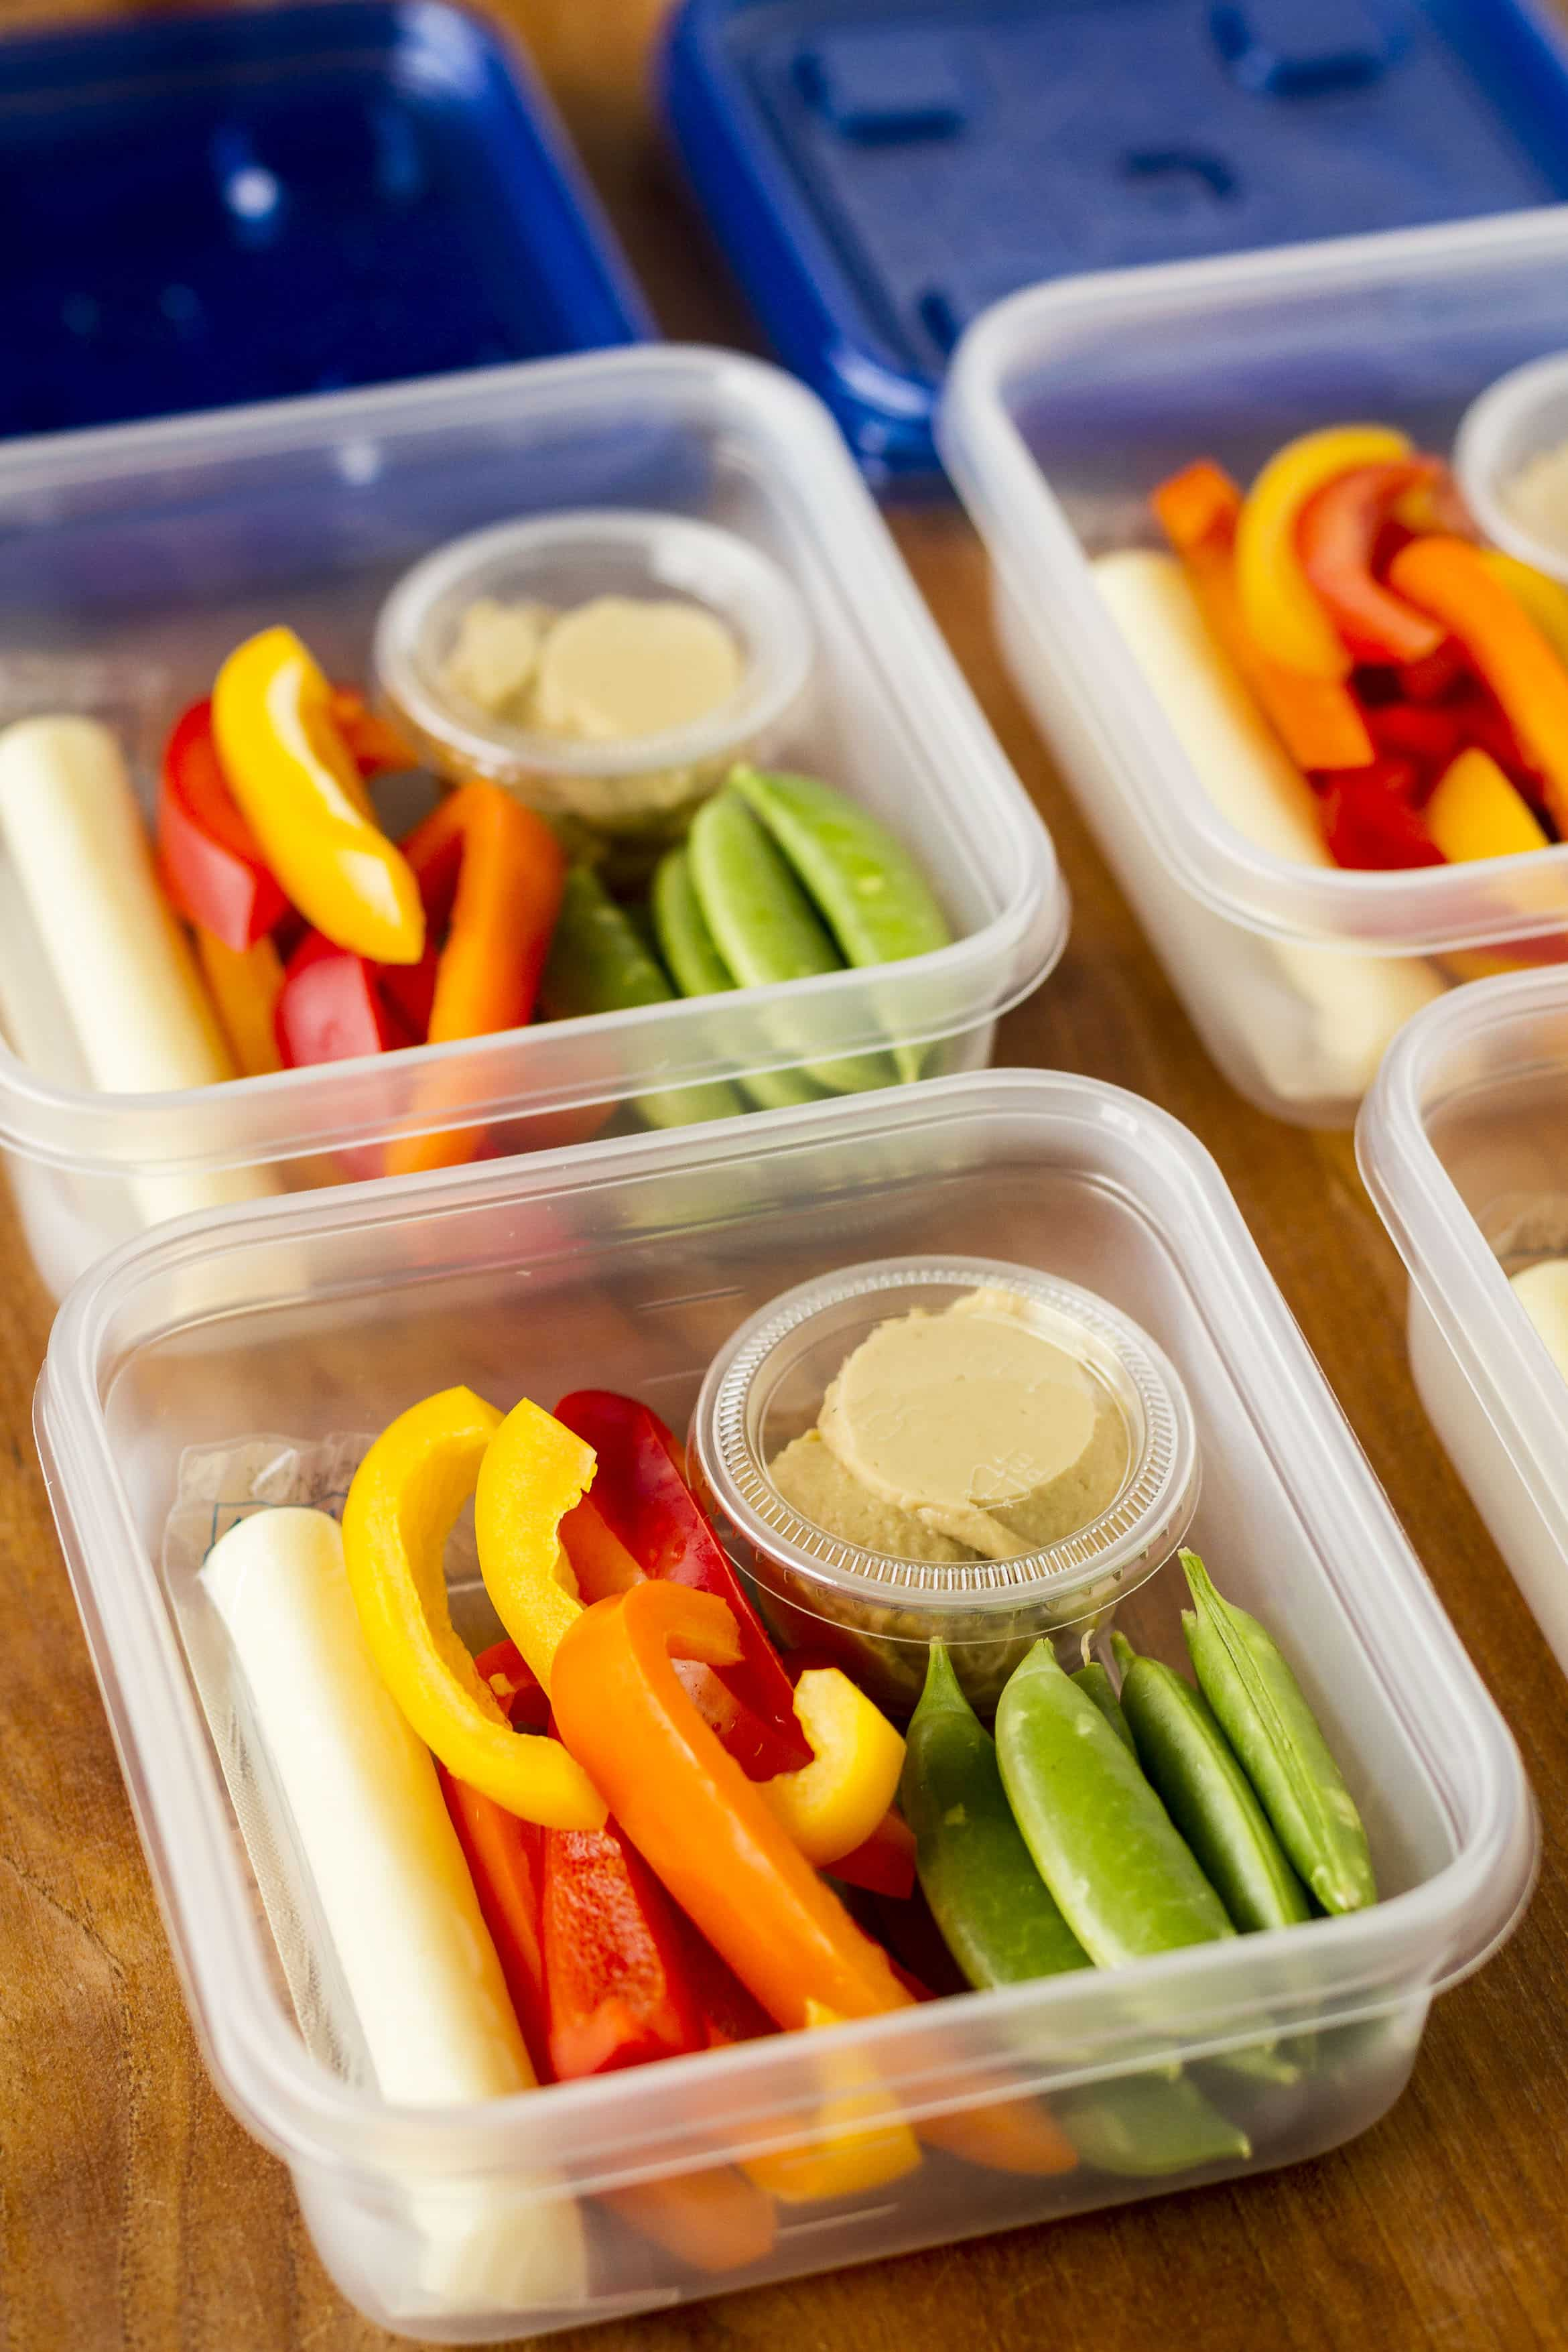 simple veggies & hummus snack idea for meal prep